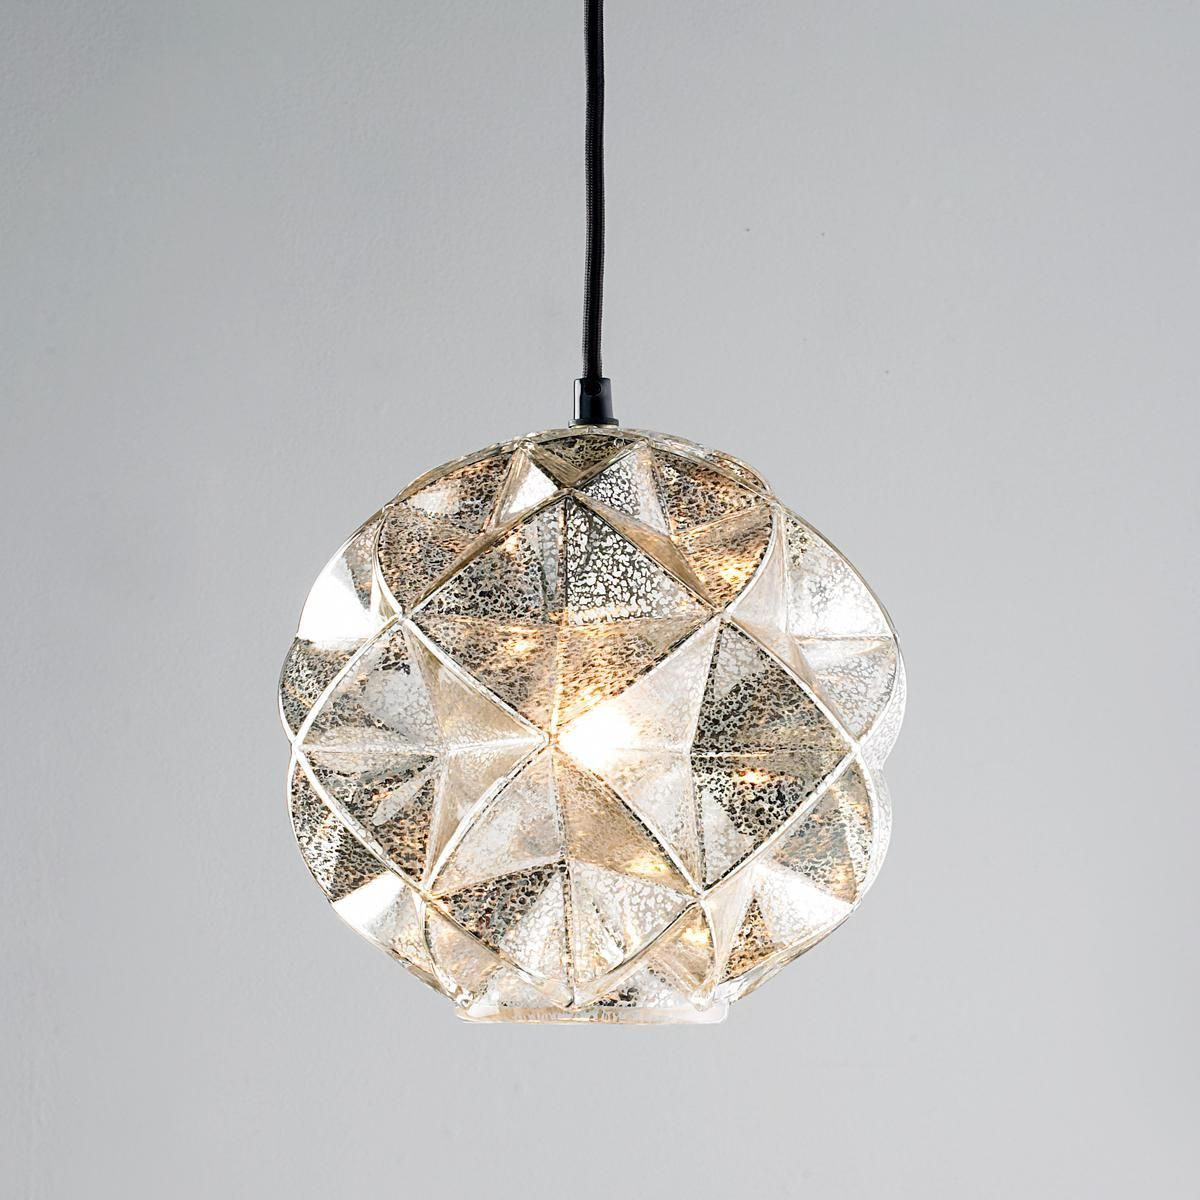 Mercury Glass Pendant Light Fixture Mesmerizing Mercury Glass Geodesic Dome Pendant Light  Mercury Glass Pendant Inspiration